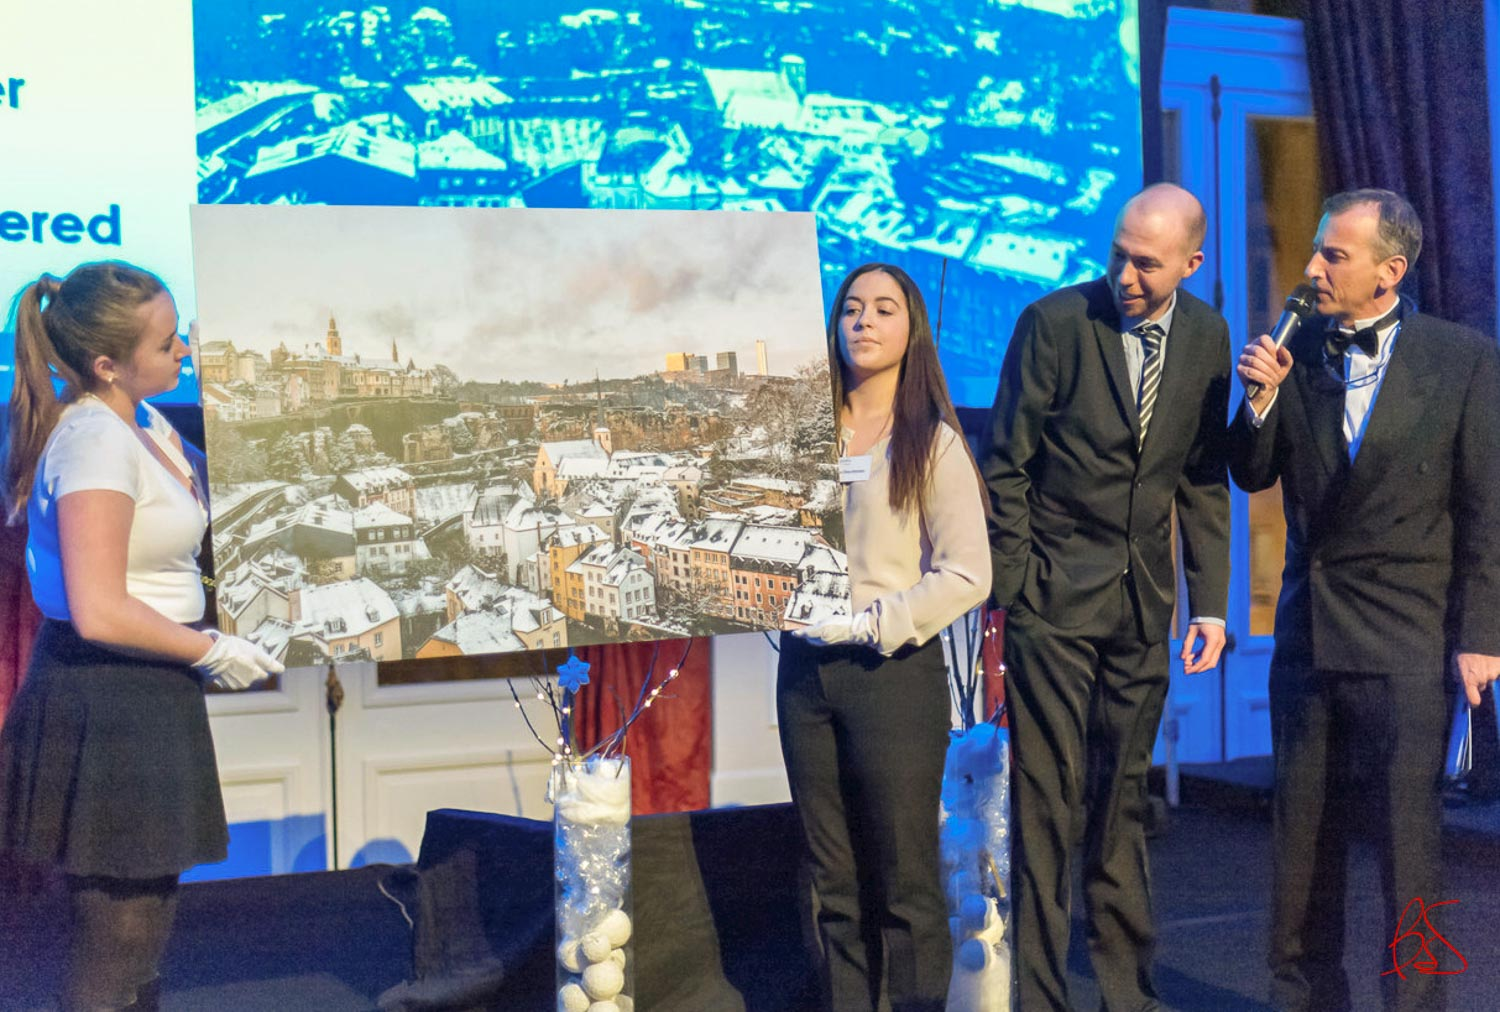 Make-A-Wish Luxembourg Winter Wonderland Gala and Auction 2016 at Cercle Cité in Luxembourg City -The Fable City picture of Luxembourg donated by photographer Christophe Van Biesen